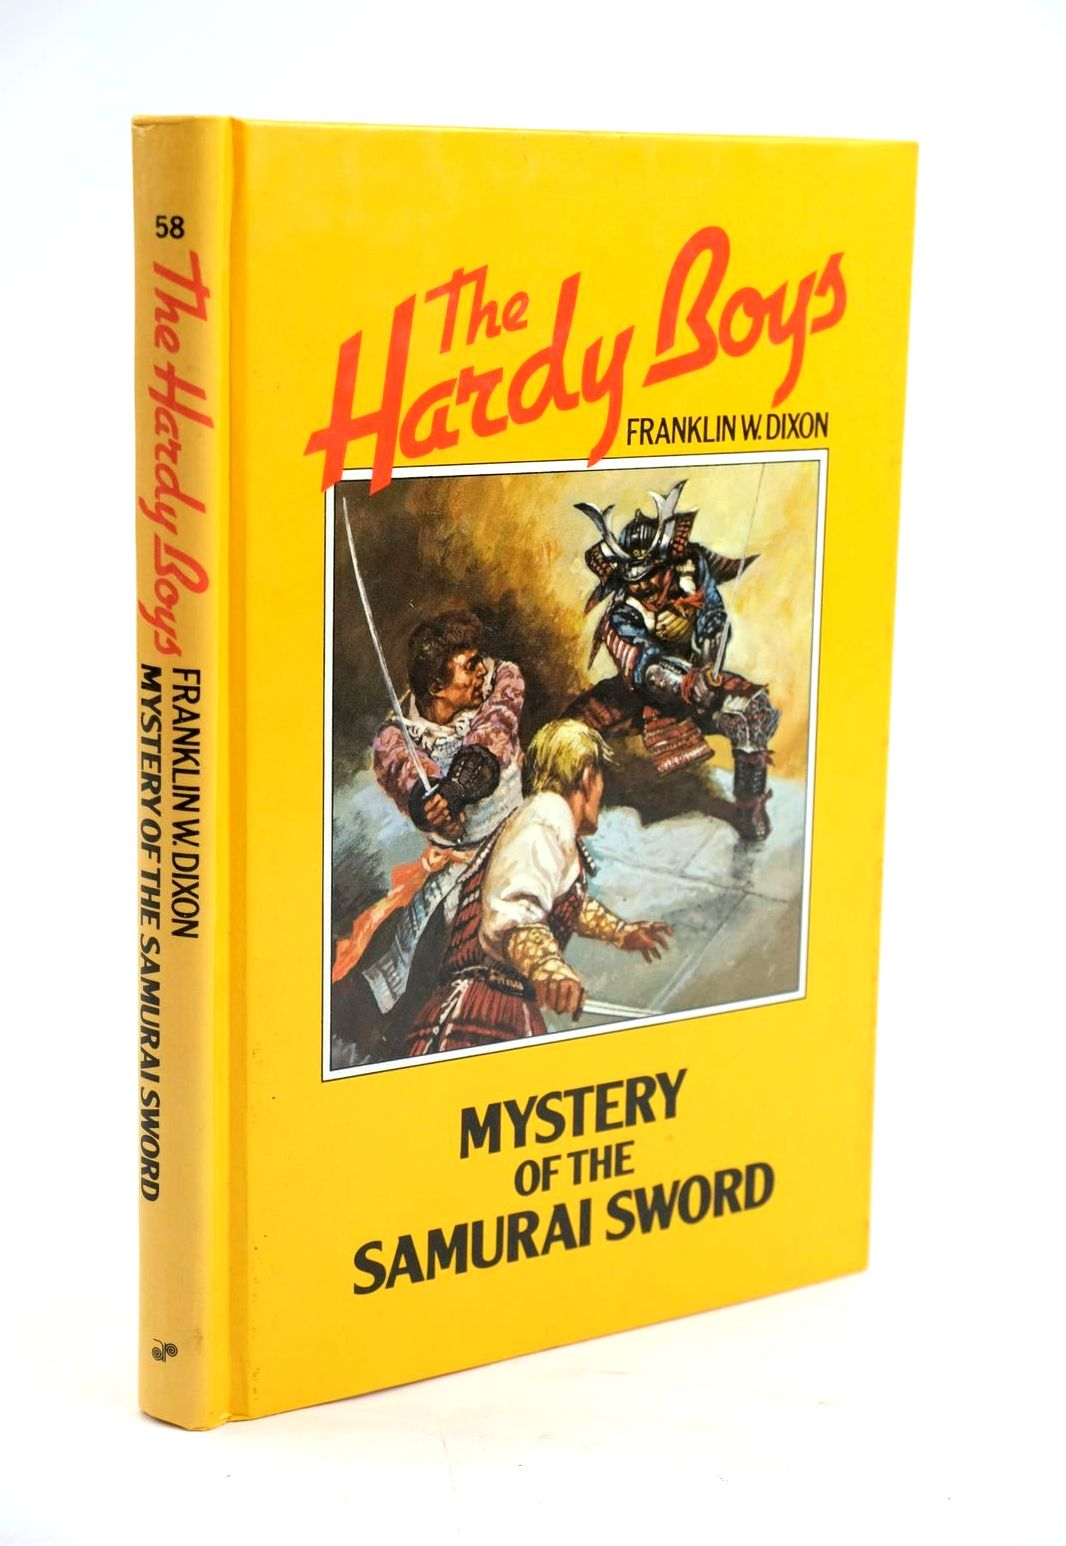 Photo of MYSTERY OF THE SAMURAI SWORD written by Dixon, Franklin W. illustrated by Morrill, Leslie published by Angus & Robertson Publishers (STOCK CODE: 1319547)  for sale by Stella & Rose's Books